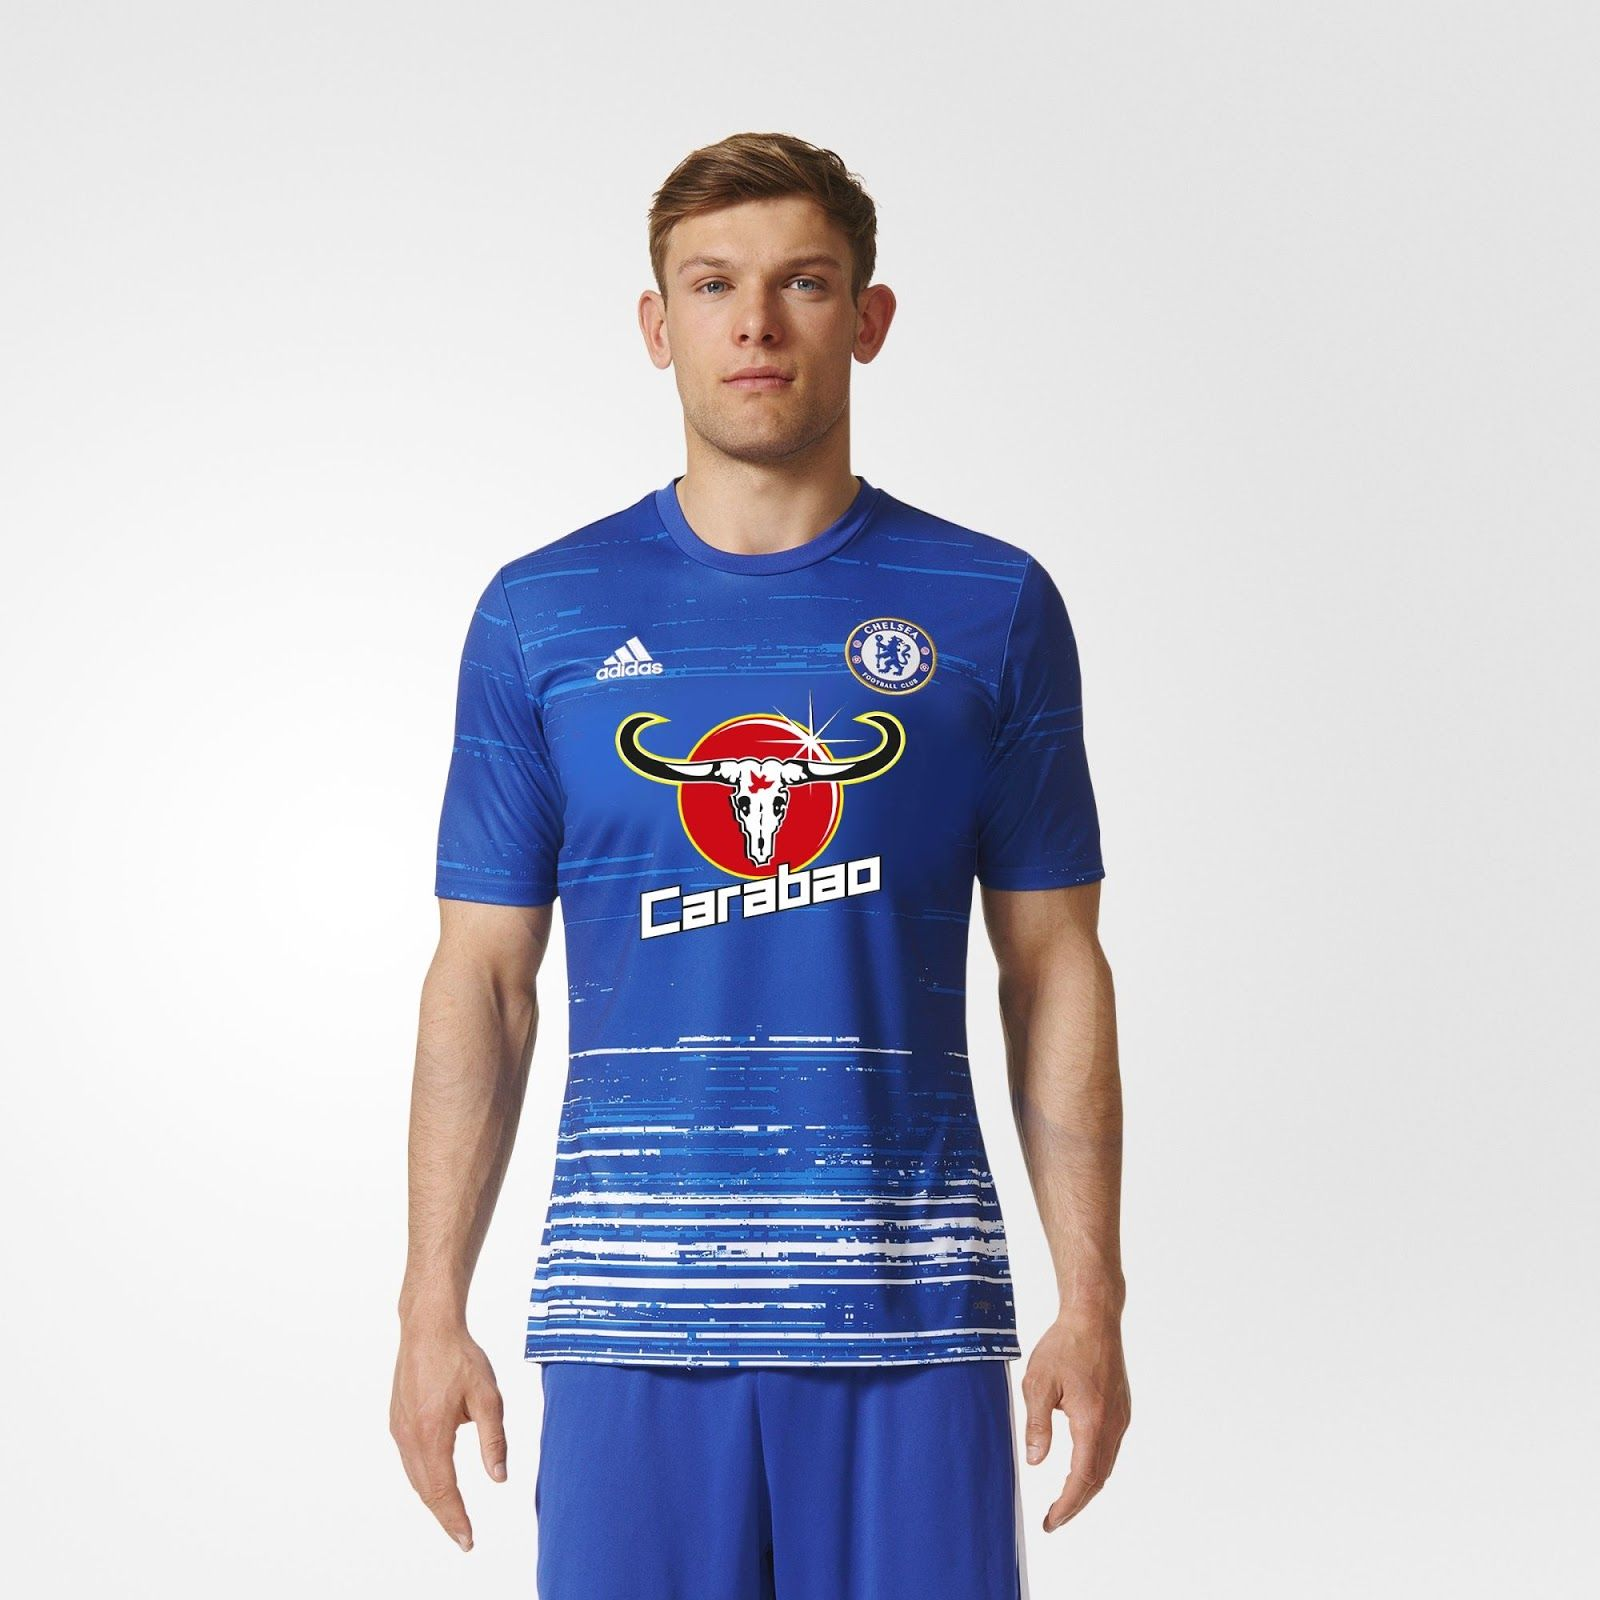 The new Chelsea pre-match shirt features the uber-bold Carabao logo for the  first time, matched by the shirt's distinctive overall look.